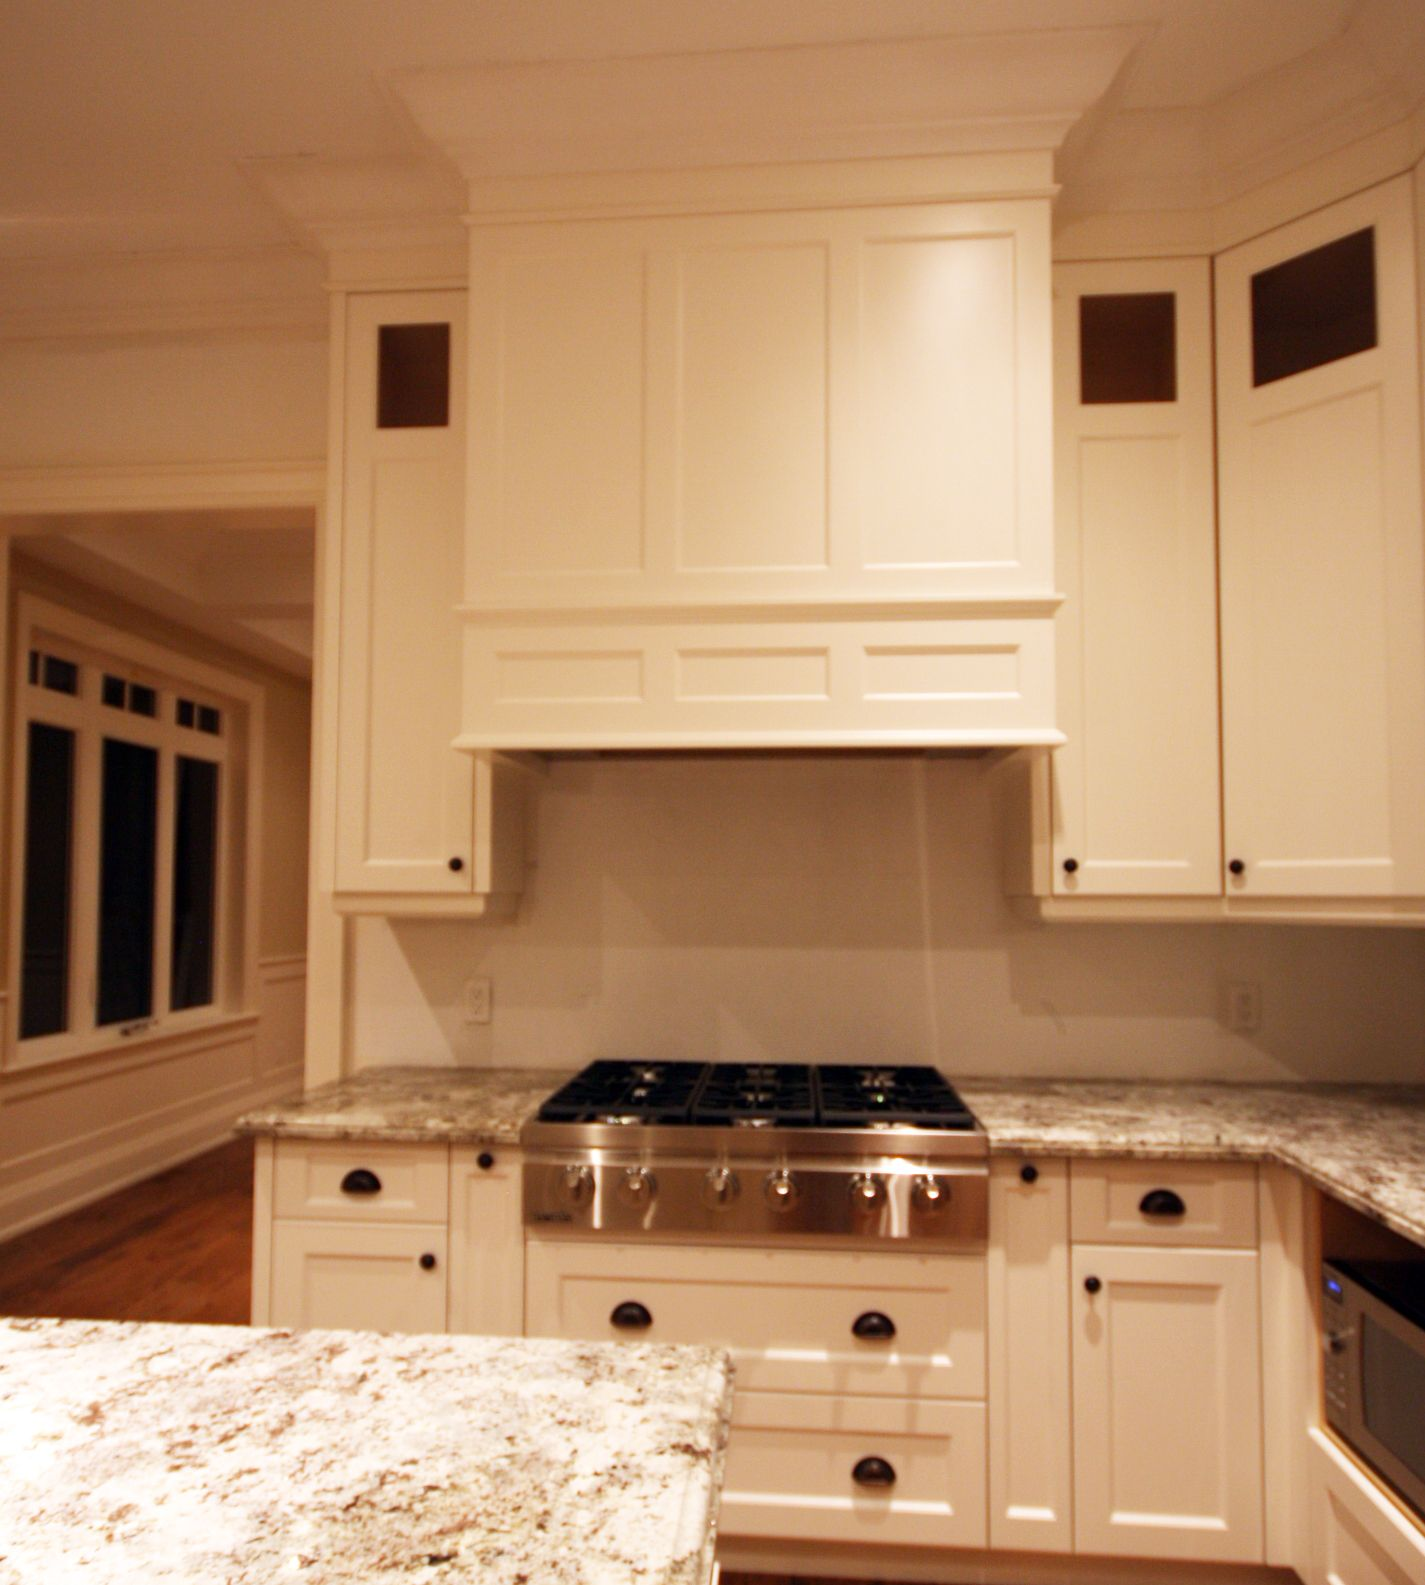 Prasada Kitchens And Fine Cabinetry: Integrating Today's Conveniences With Style. Kitchen Hood